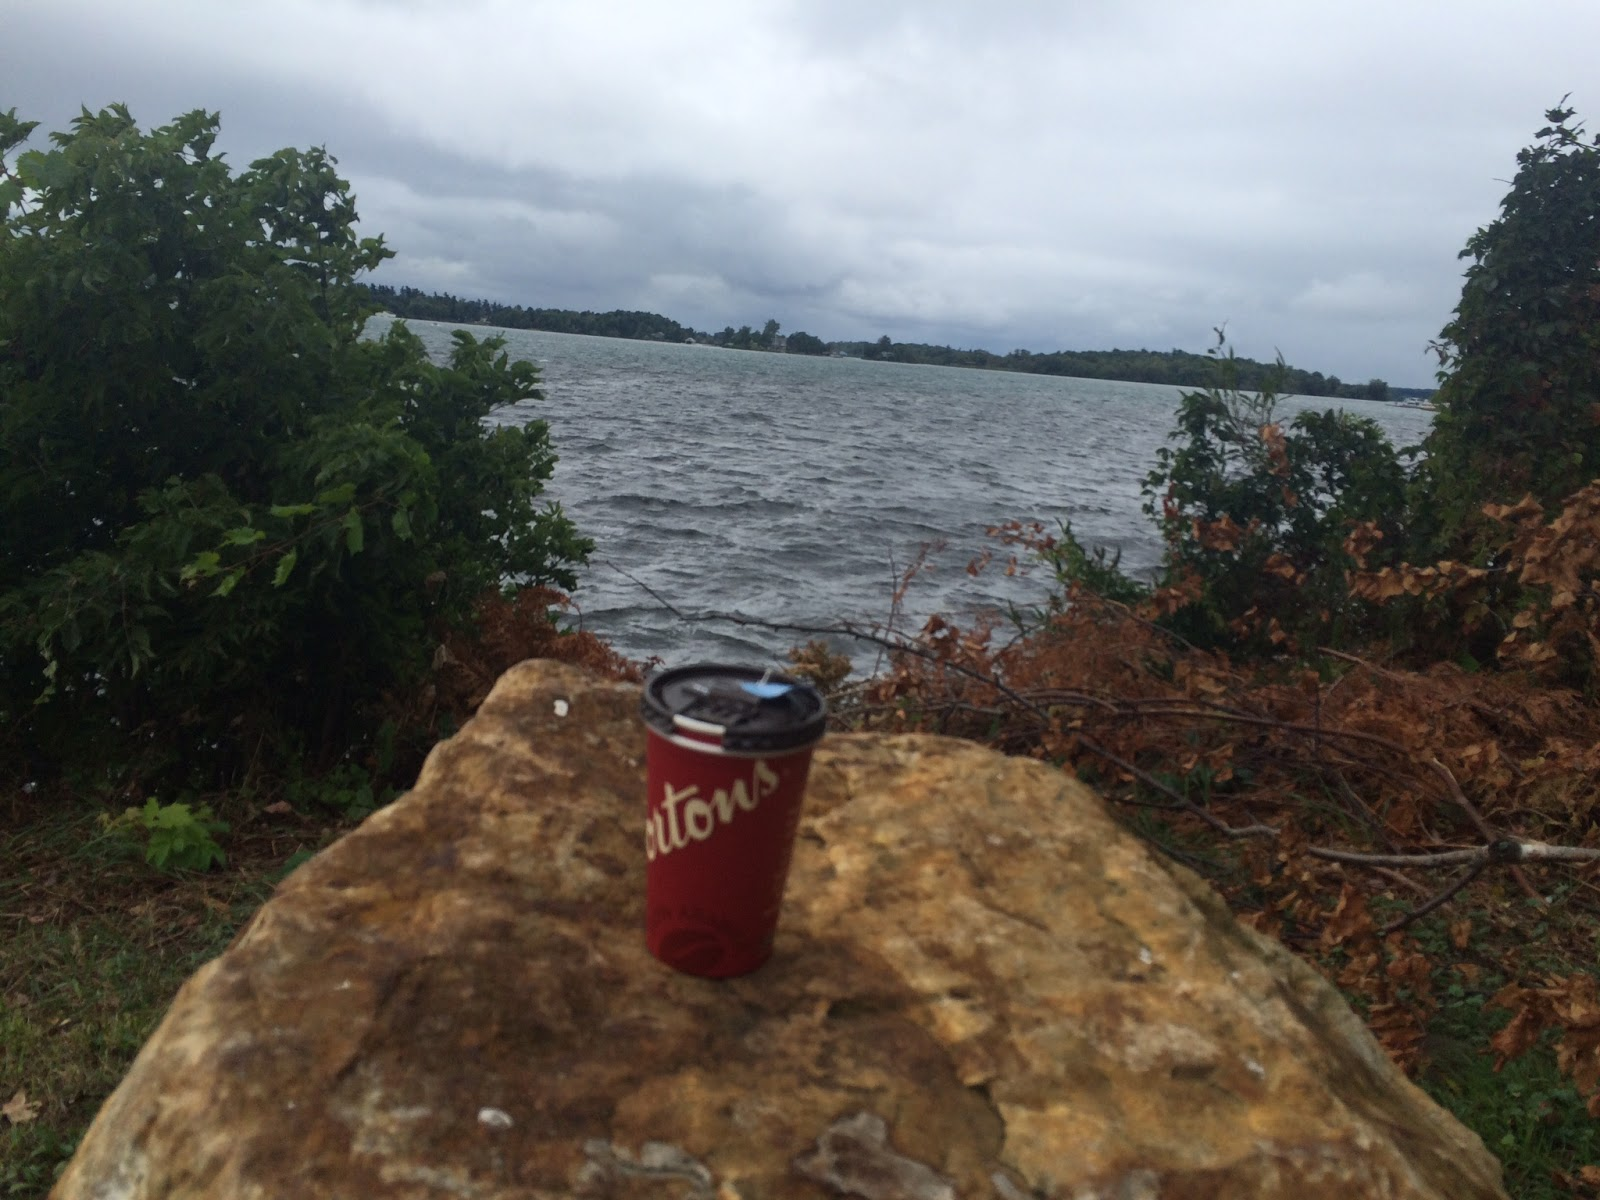 Tim Hortons coffee on the road - view on a lake